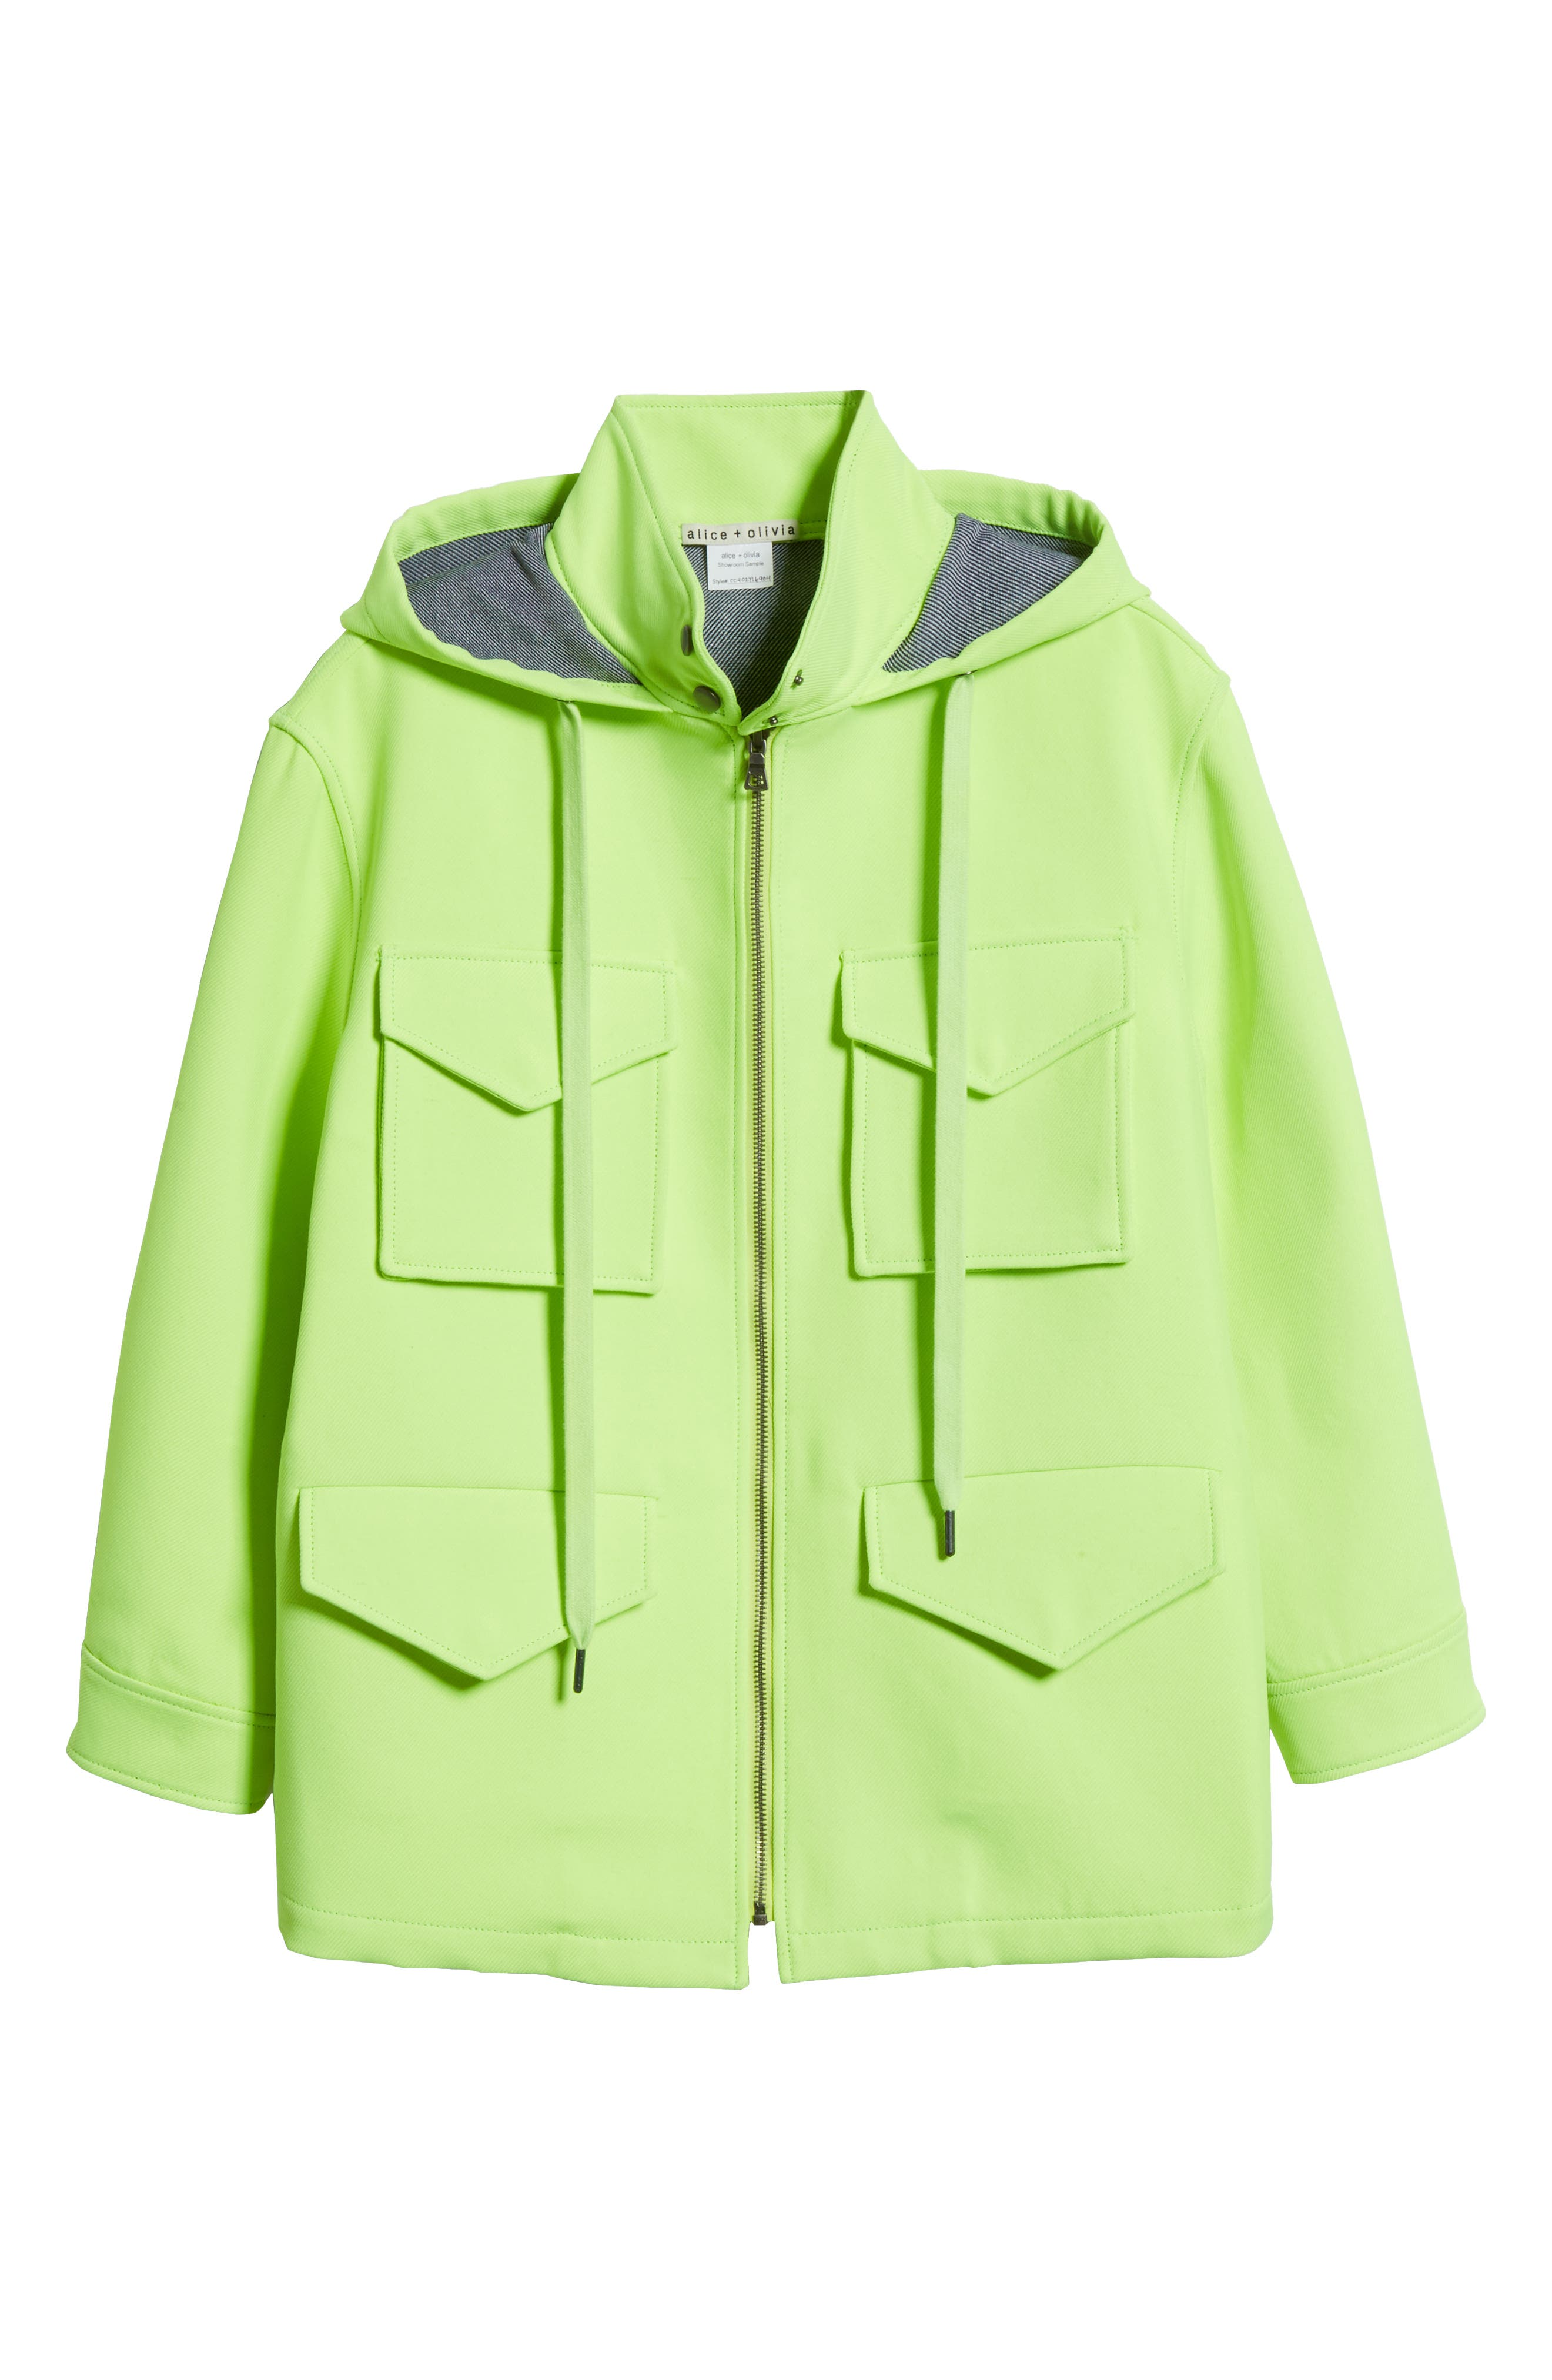 ALICE + OLIVIA,                             Russo Hooded Jacket,                             Alternate thumbnail 5, color,                             NEON YELLOW